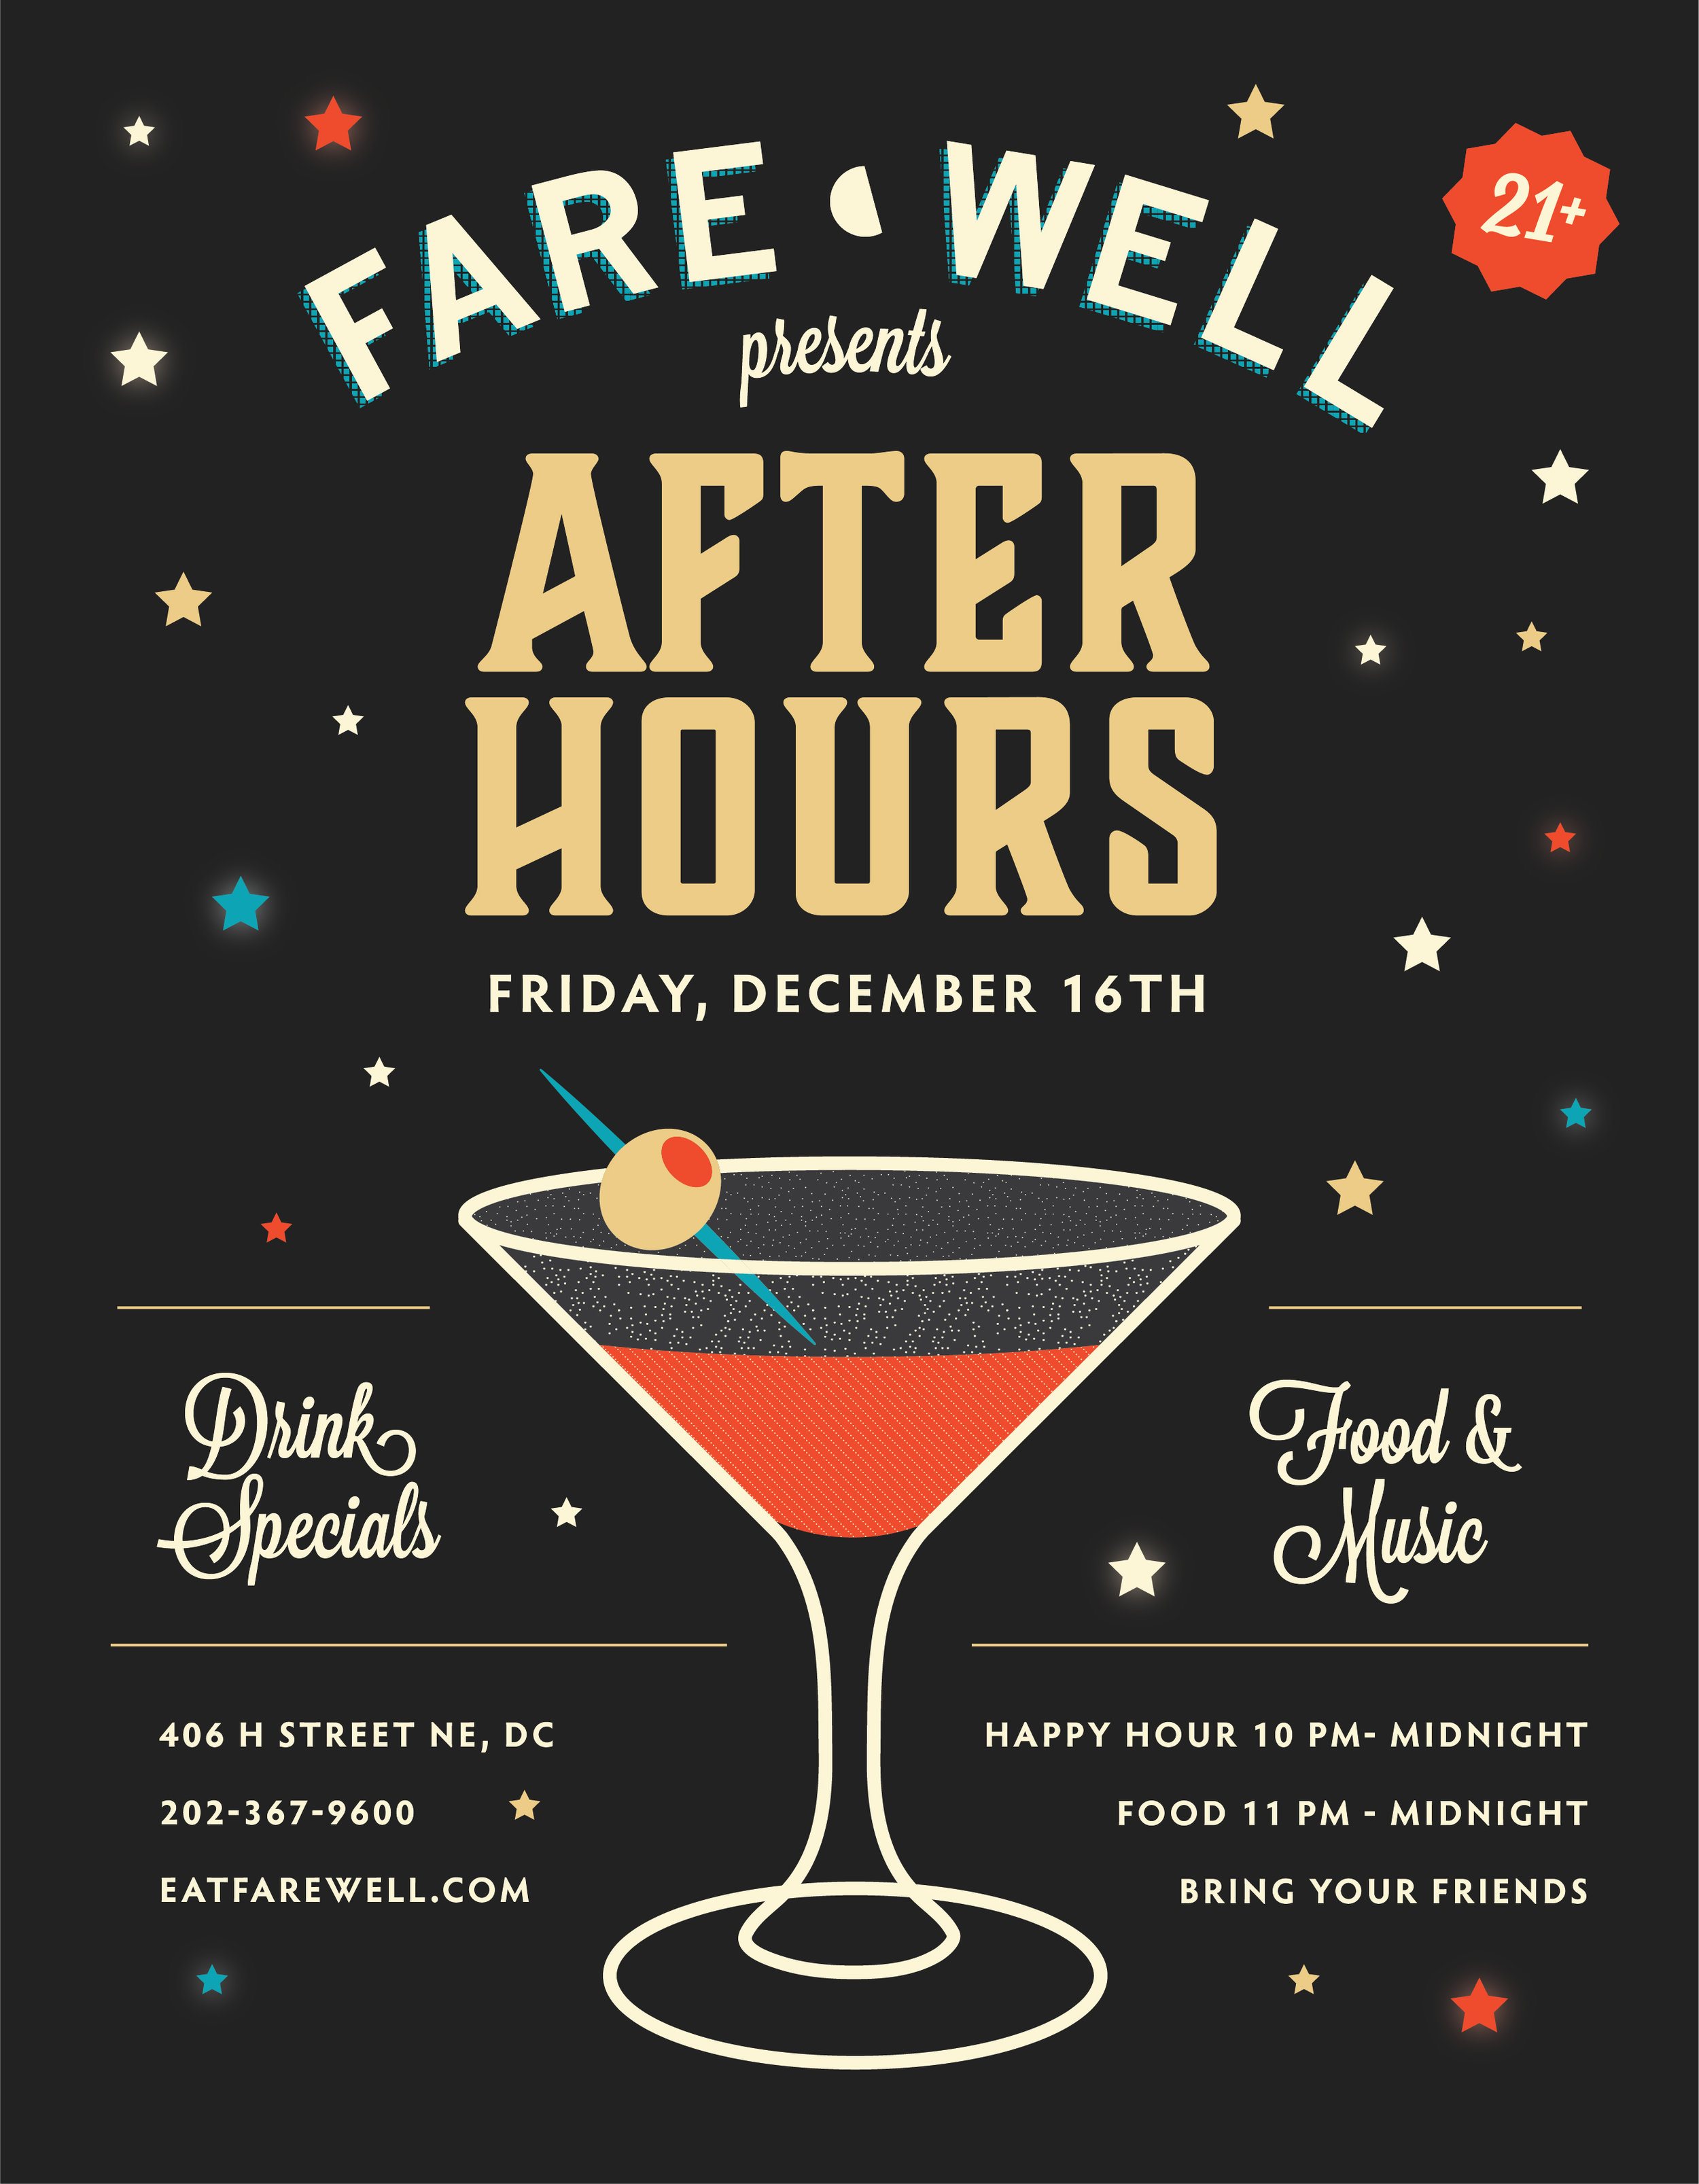 FWL-AfterHours-flyer-01.jpg